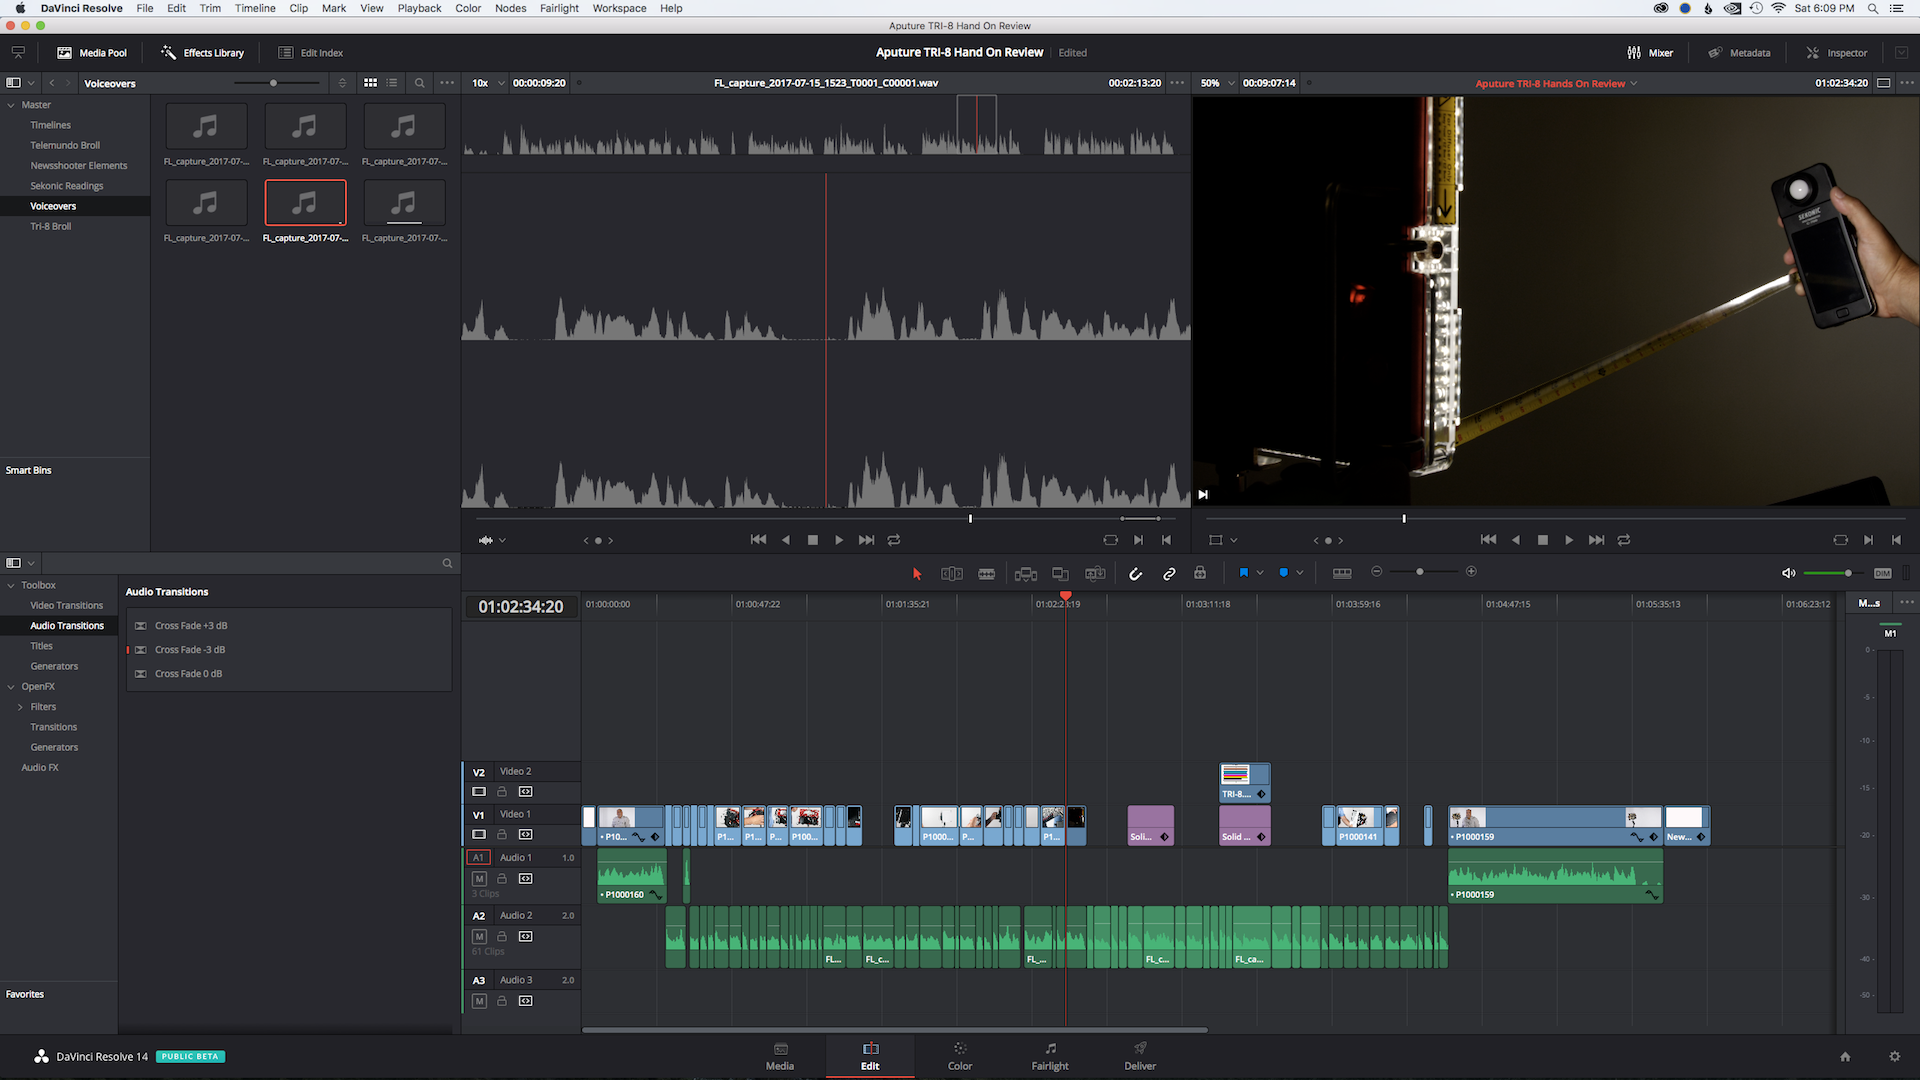 editing in Resolve 14